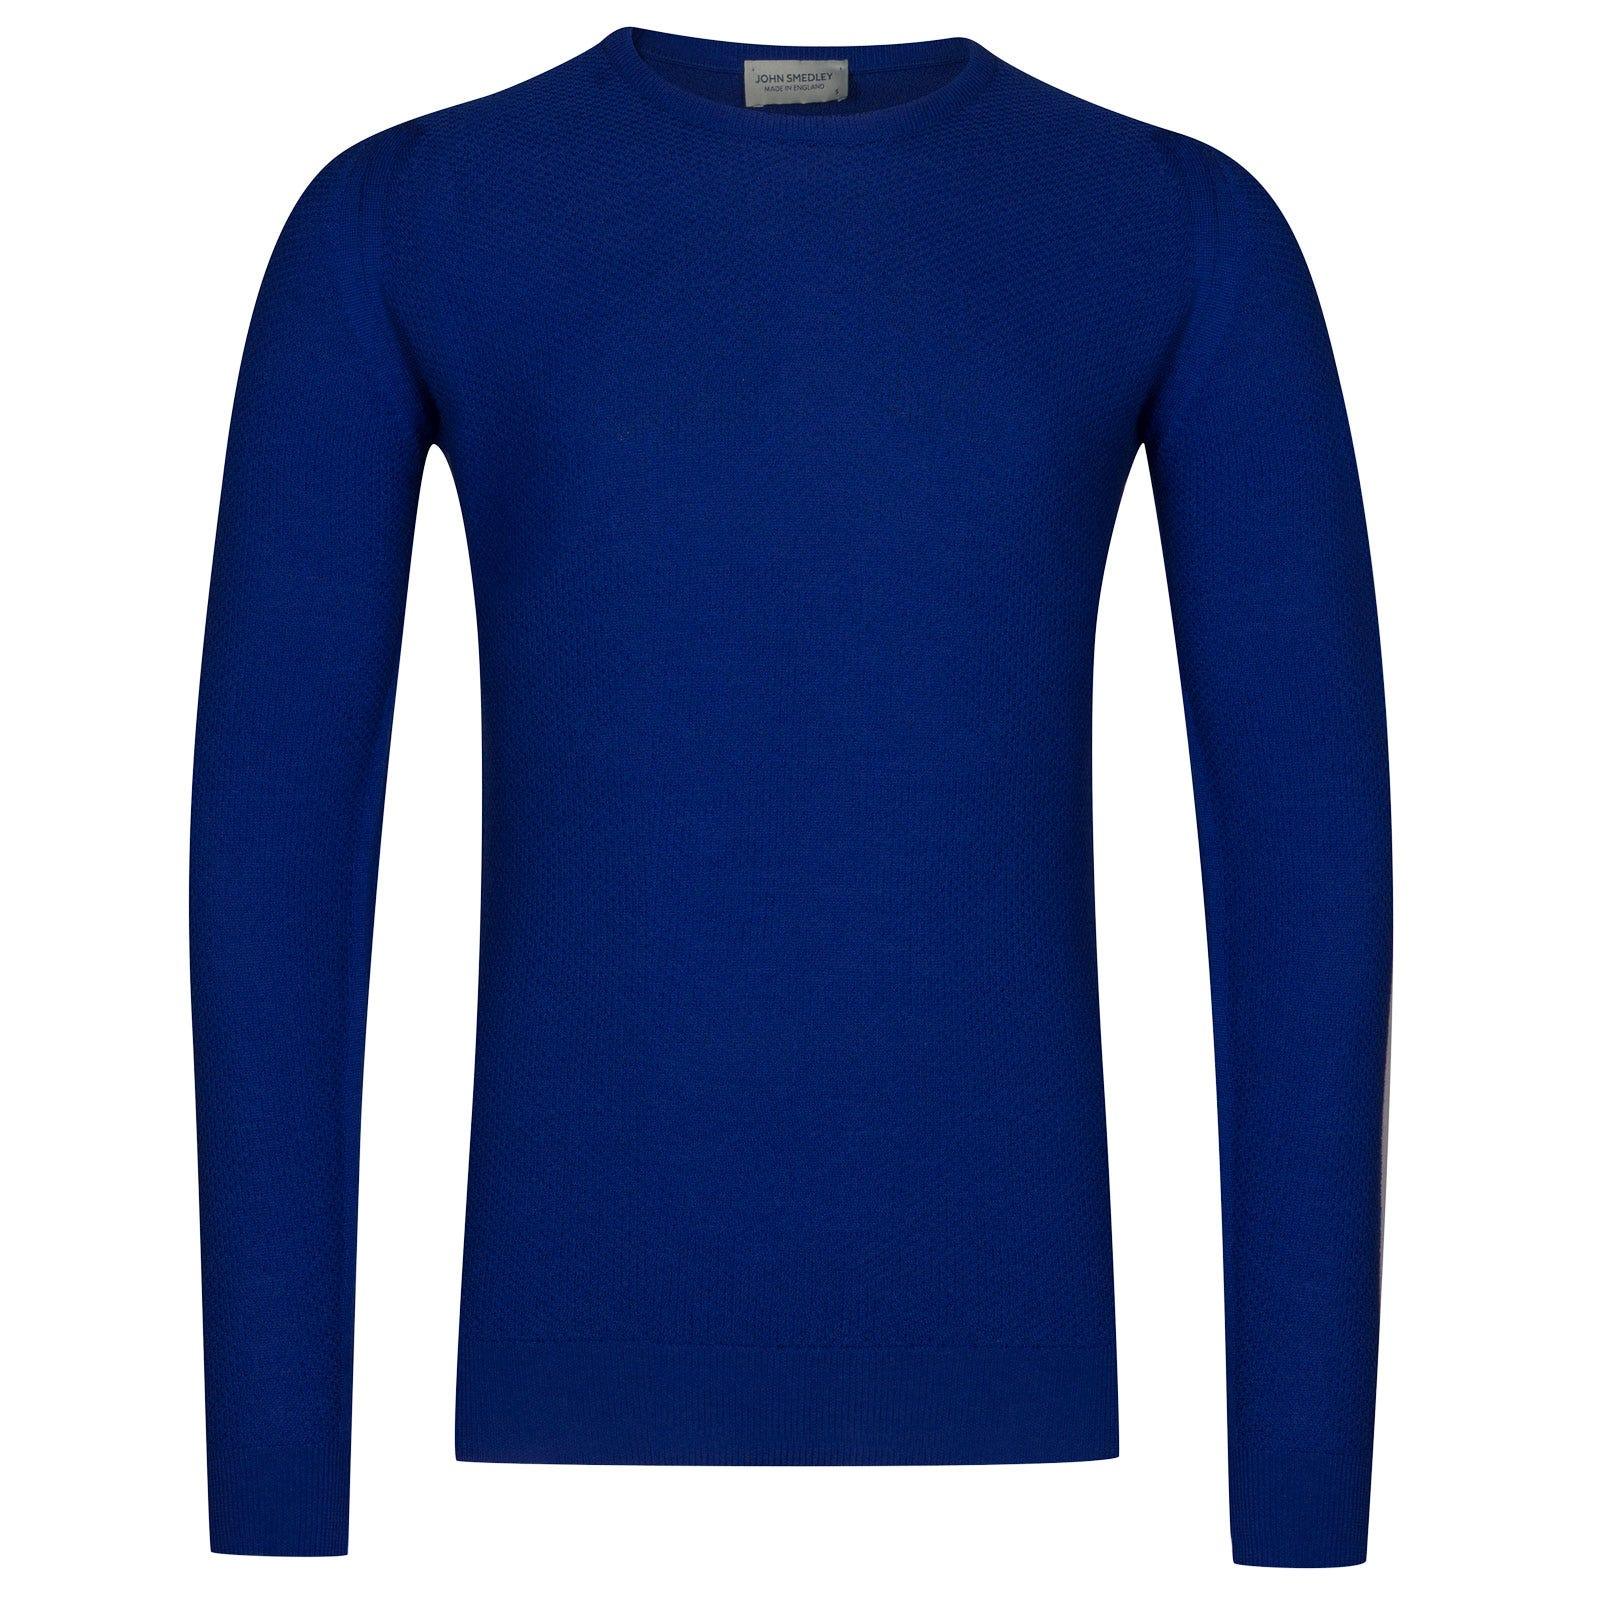 John Smedley 1Singular Merino Wool Pullover in Coniston Blue-XS